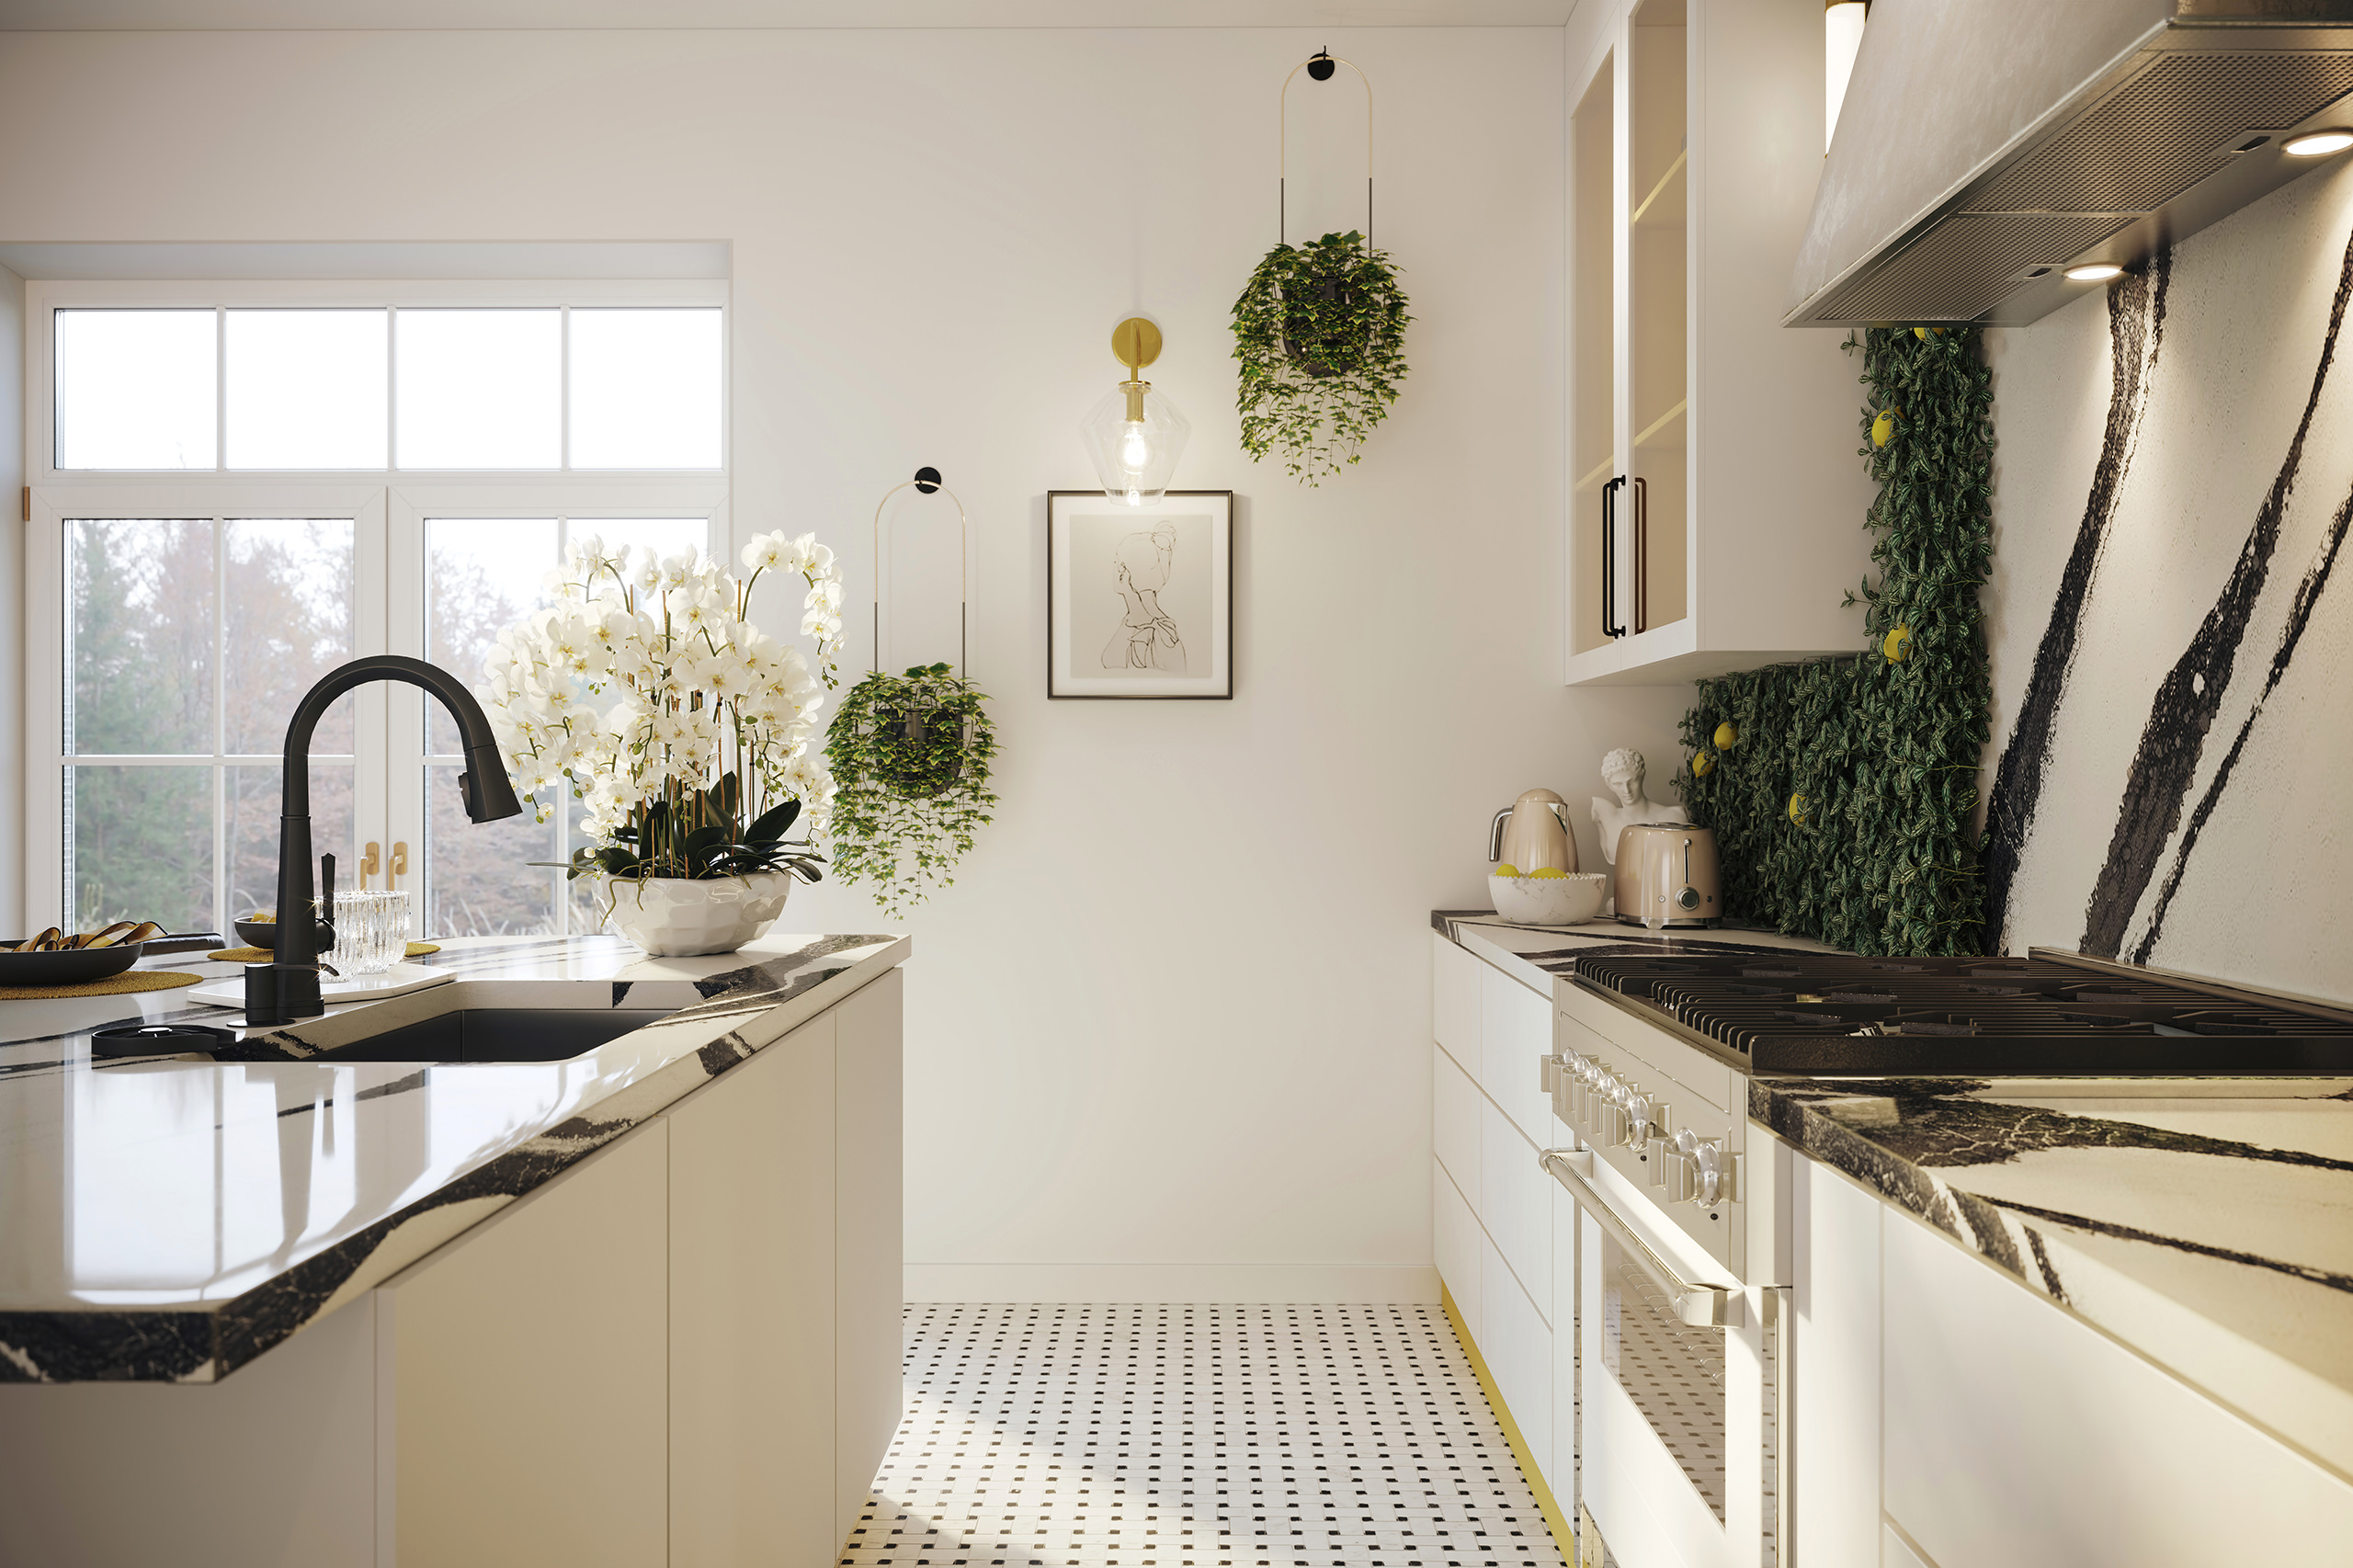 One-point perspective rendering of a light kitchen with eclectic accessories, green feature wall and organic accents